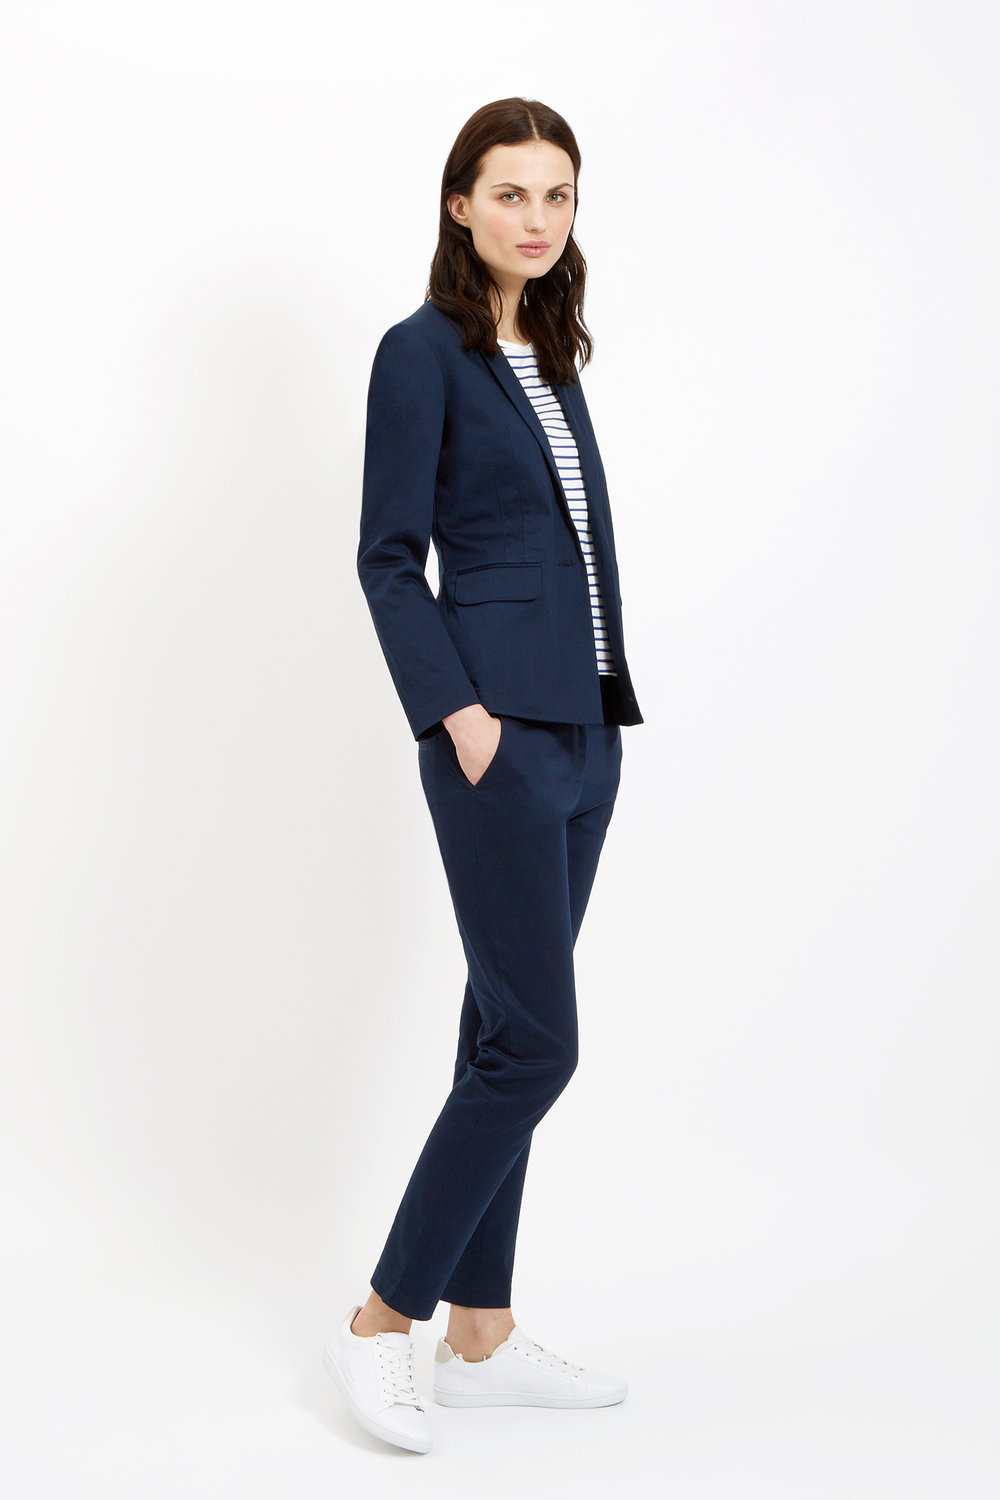 betty-jacket-in-navy-b0aab00119cf.jpg